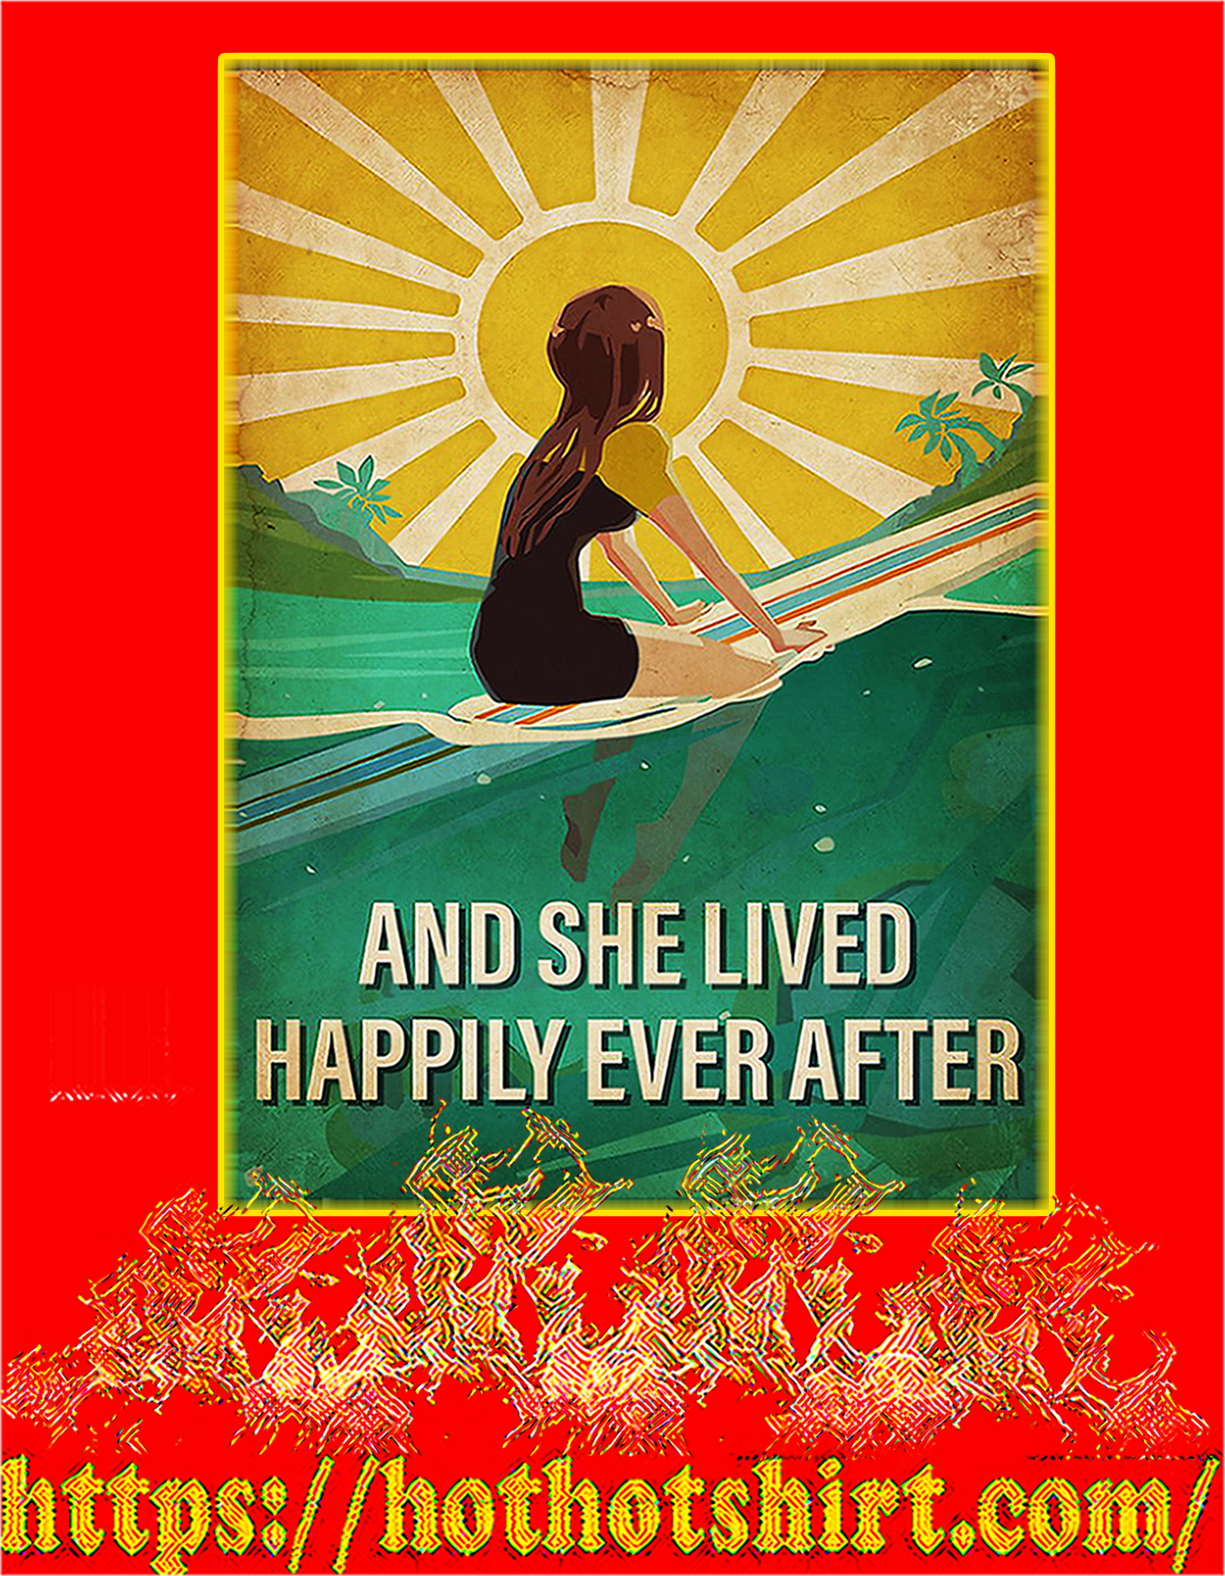 Surfing And she lived happily ever after poster - A4